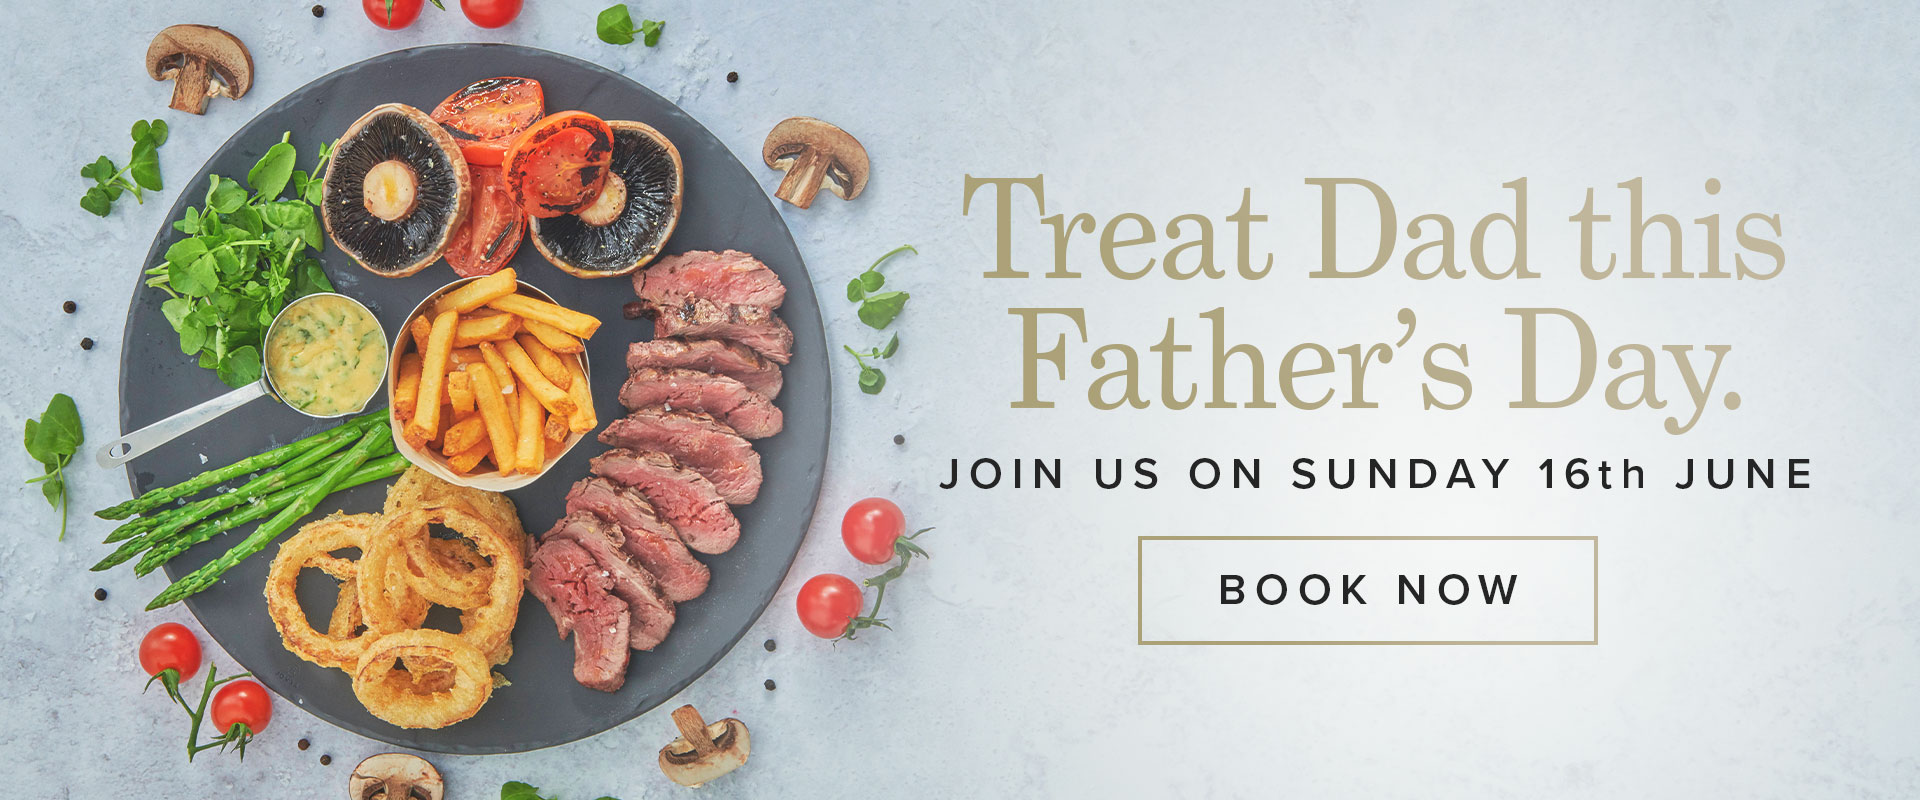 Father's Day at Browns